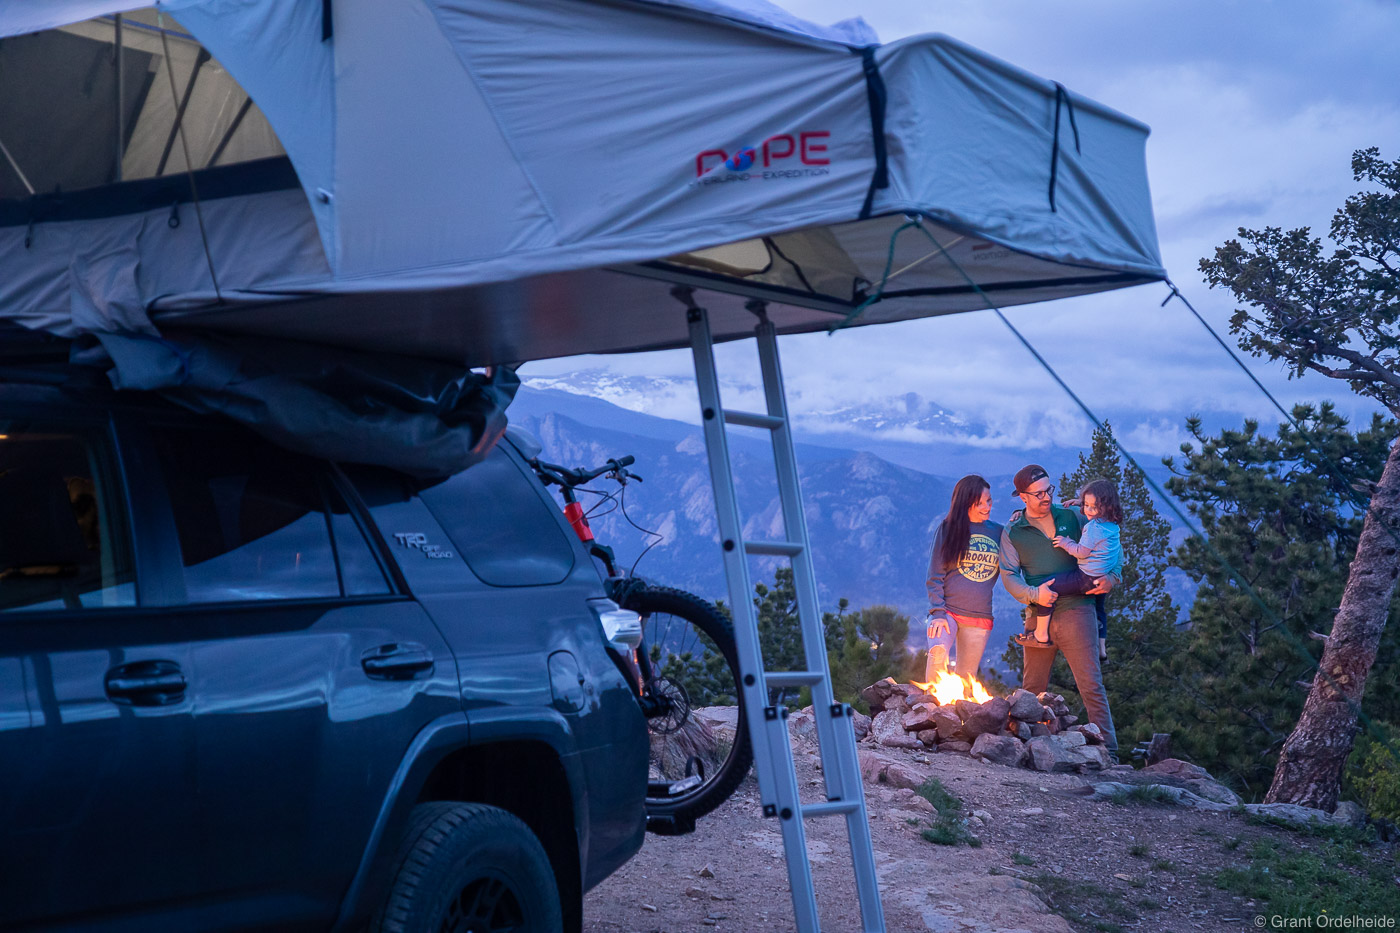 A family camping and enjoying a campfire on a cool Colorado evening.